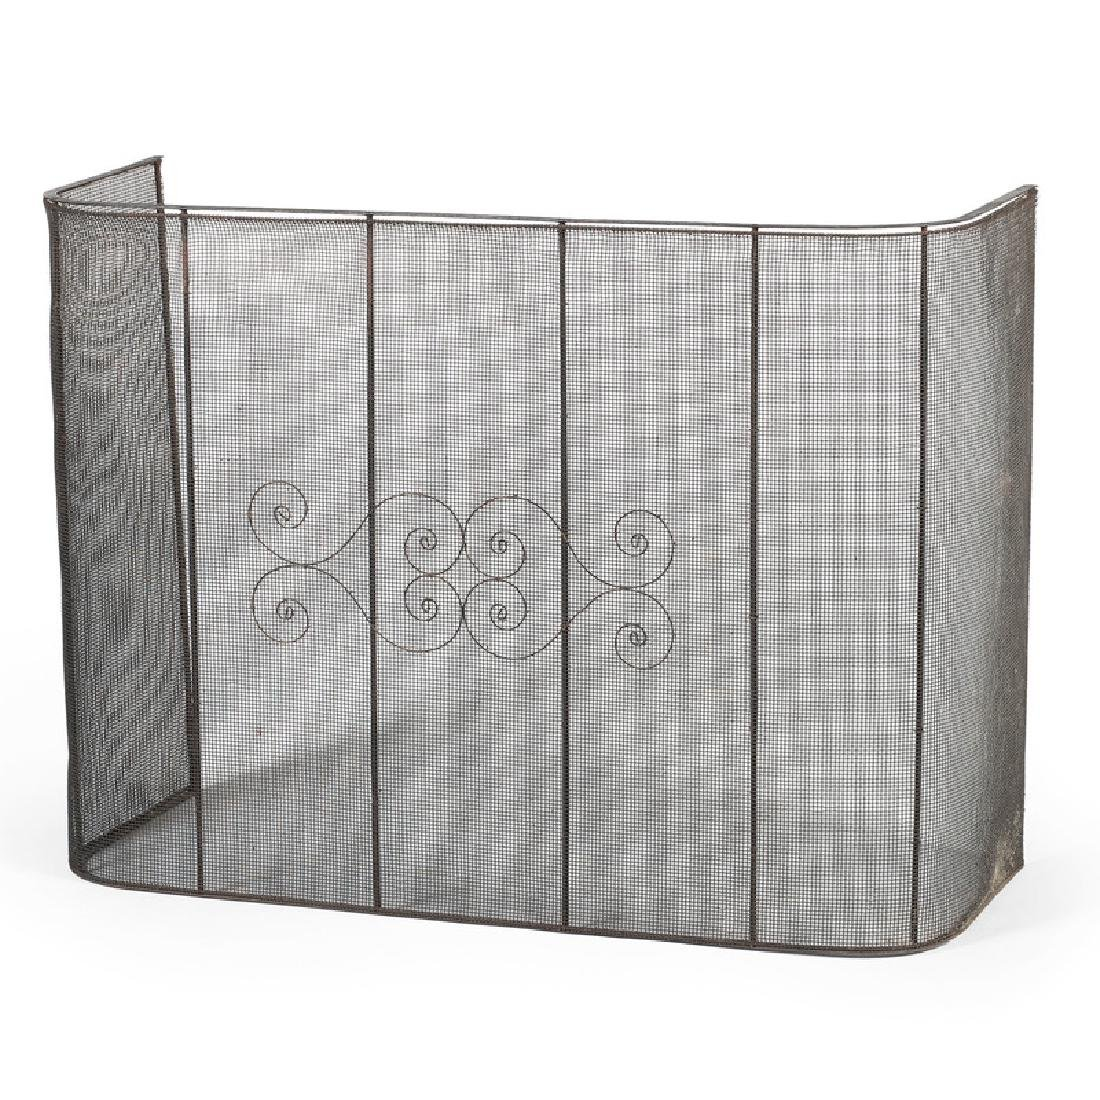 Wirework Fireplace Screen